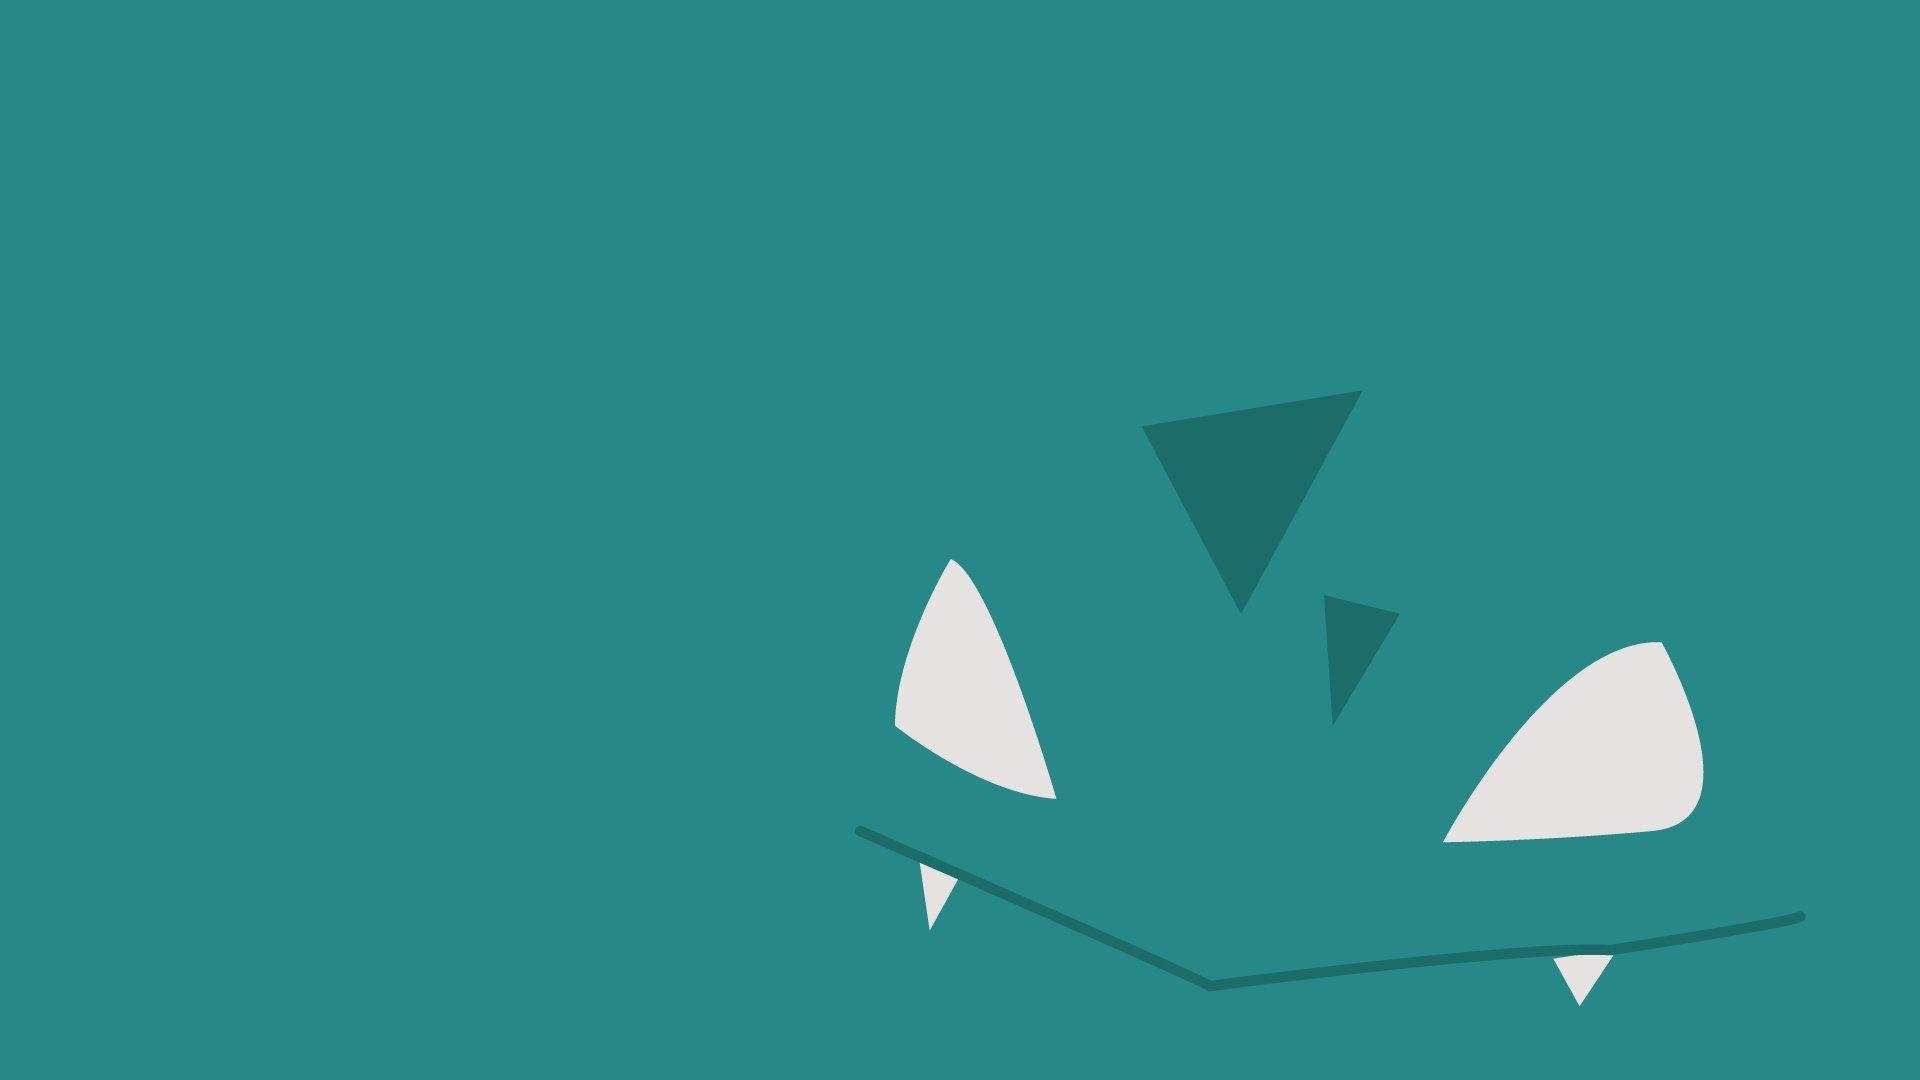 29 Ivysaur (Pokémon) HD Wallpapers | Background Images - Wallpaper ...